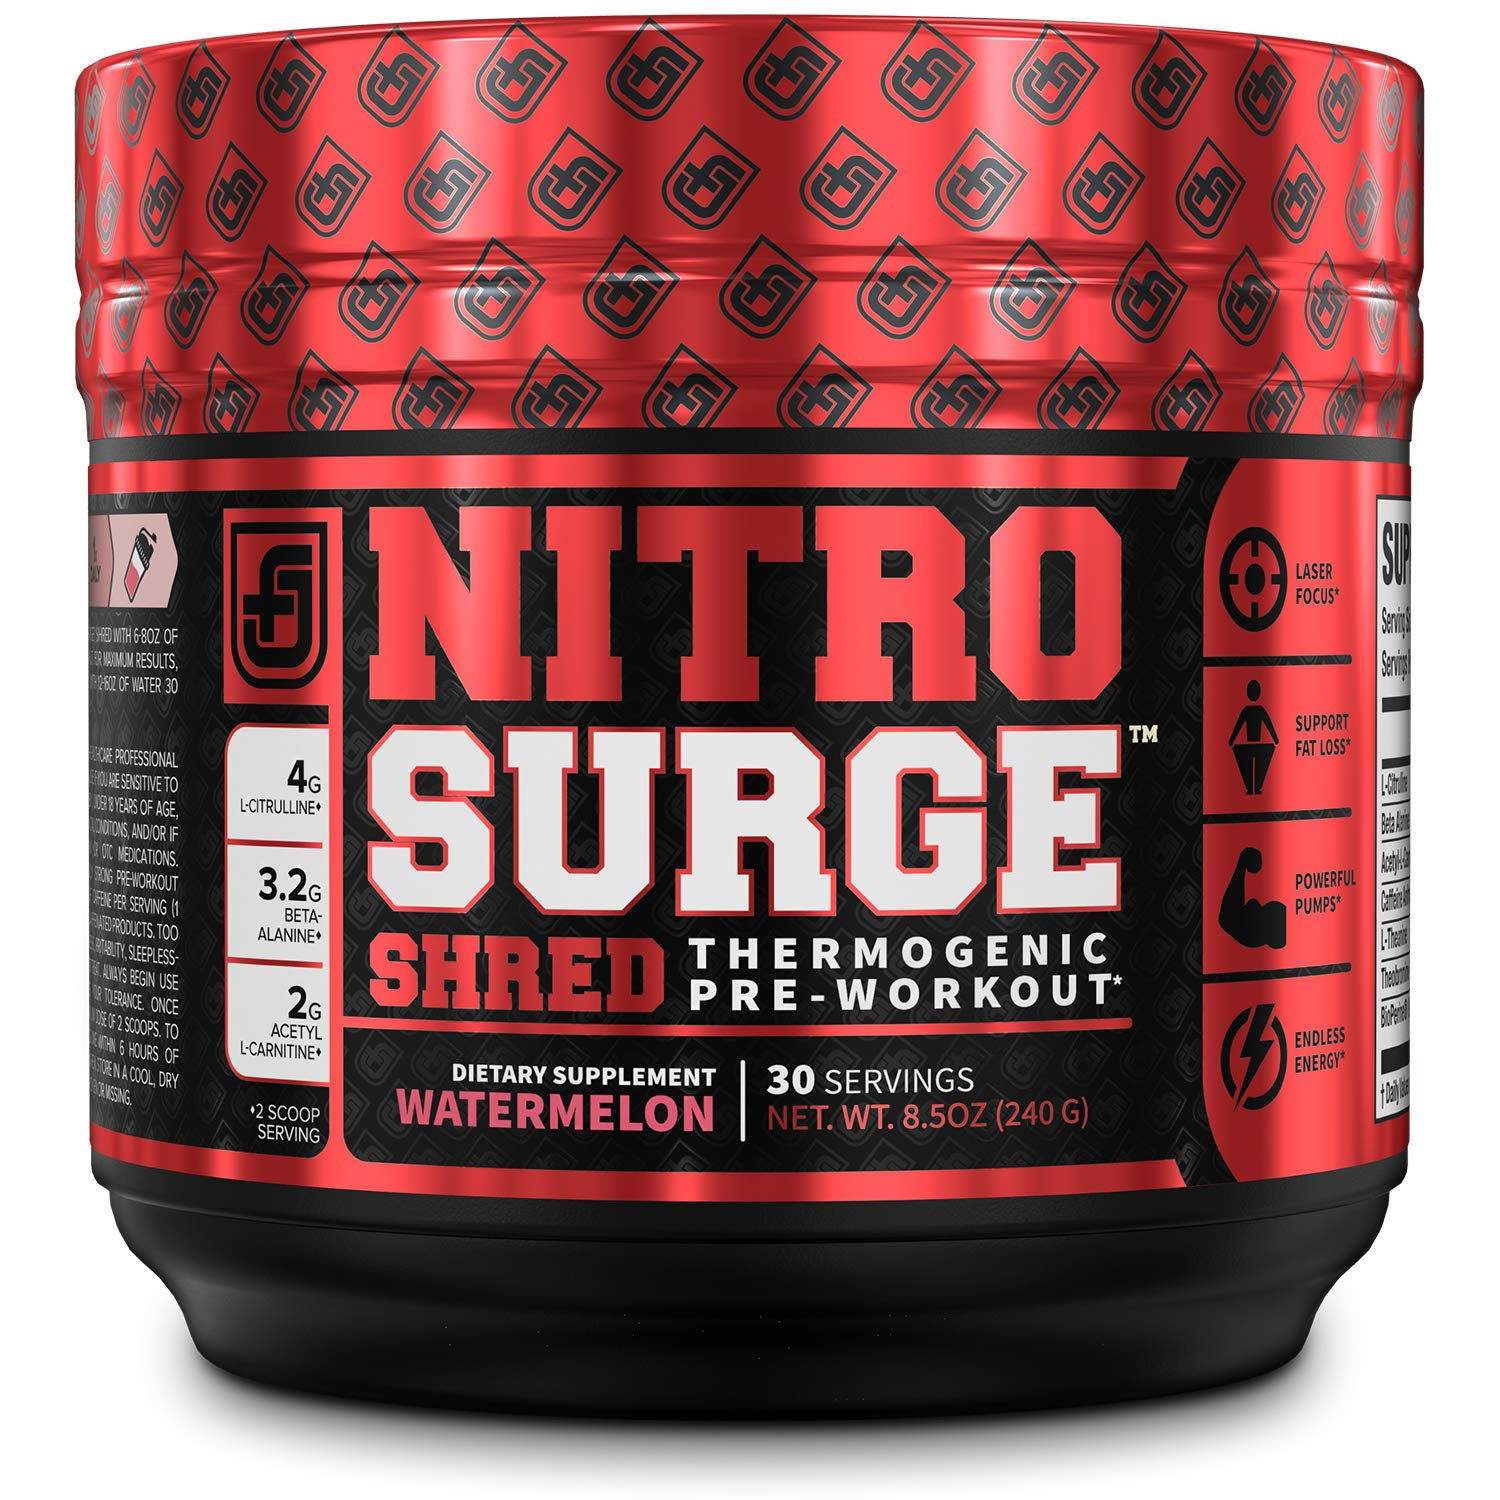 NITROSURGE Shred Pre Workout Supplement - Limitless Energy, Instant Strength Gains, Sharp Focus, Powerful Pumps - Nitric Oxide Booster & PreWorkout Powder - 30Sv, Watermelon by Jacked Factory